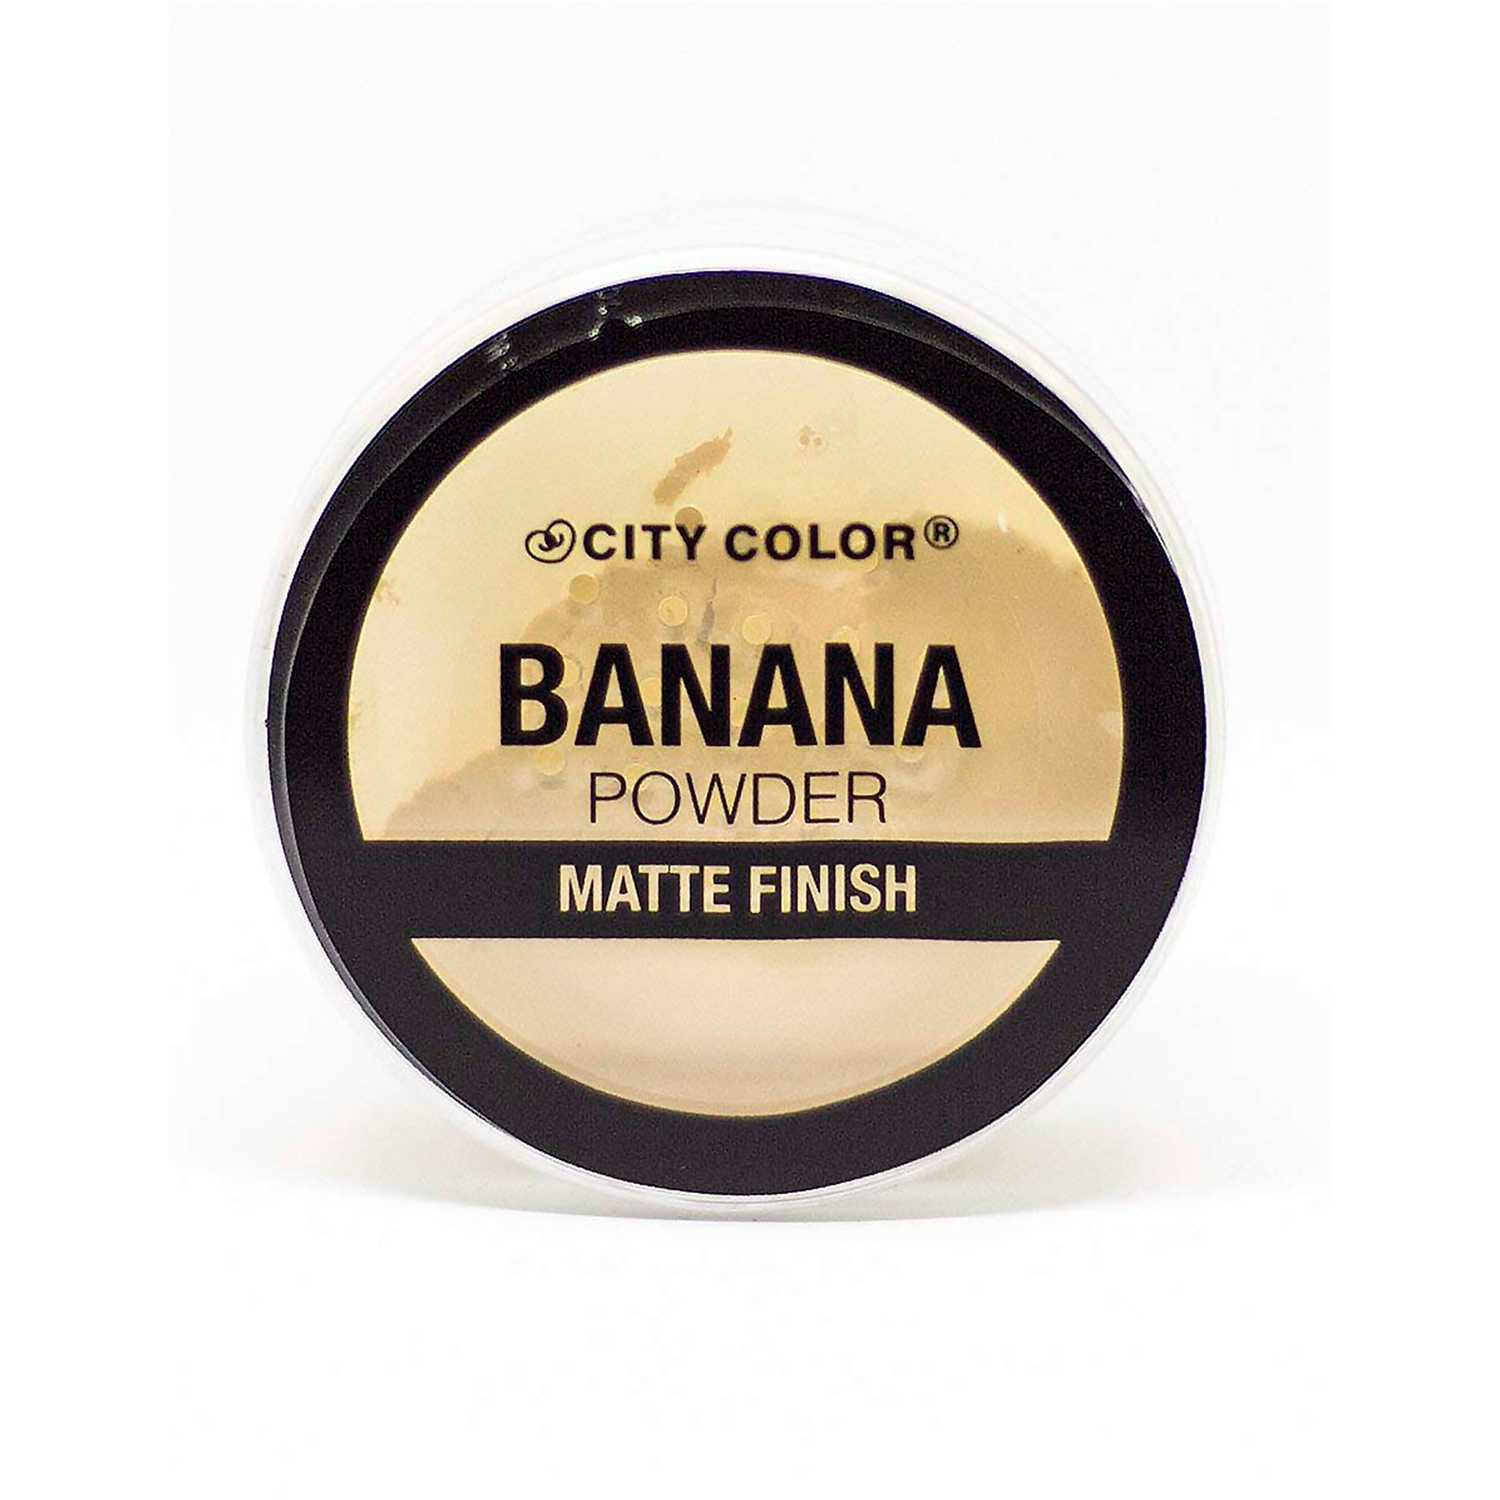 City Color loose banana powder Banana Correctores y neutralizadores